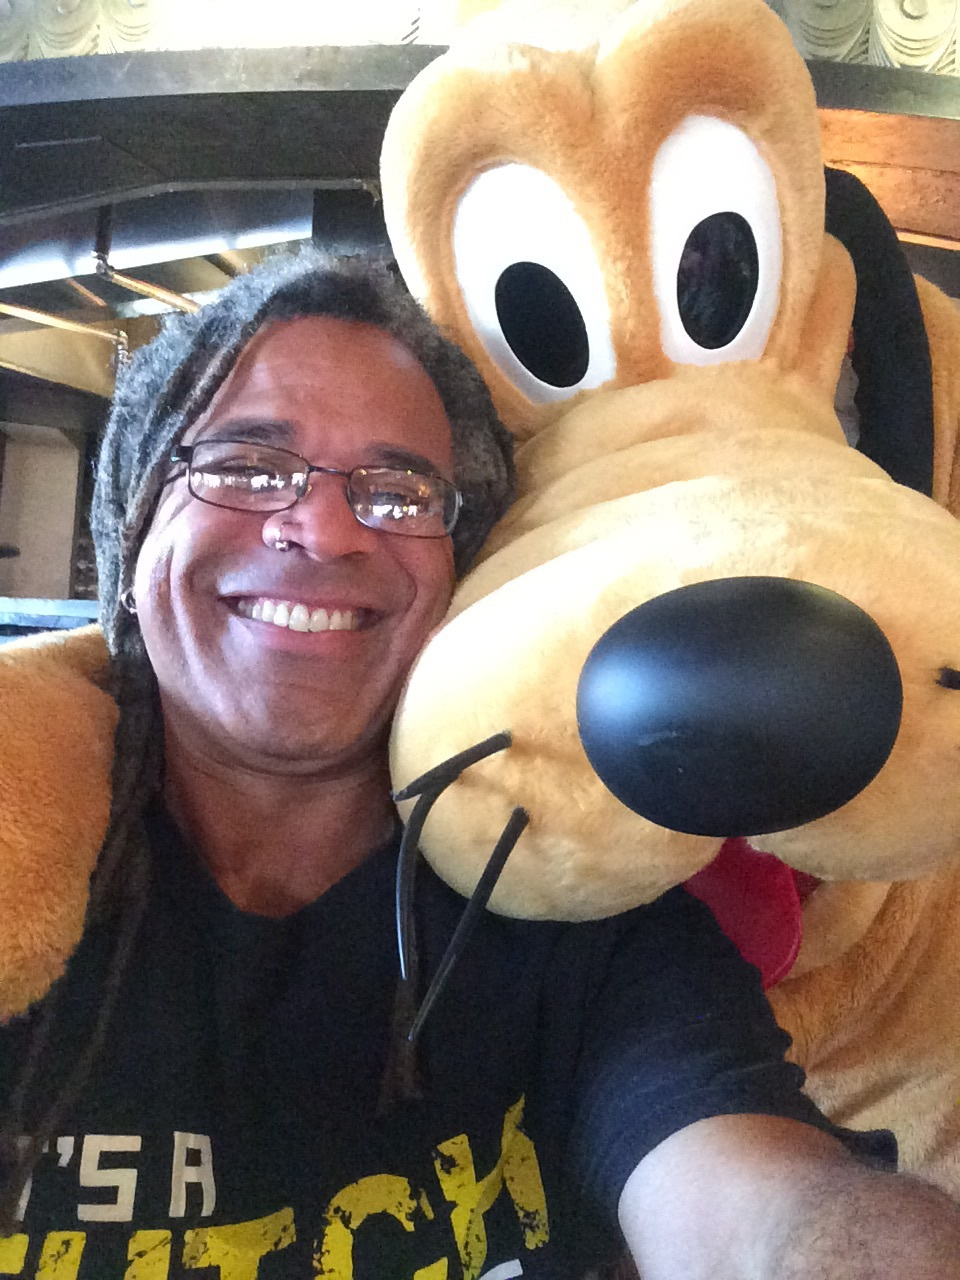 I won't stop sharing pics like this, but it will happen a lot less often. Me and Pluto on Boxing Day at Disney's Polynesian Resort.